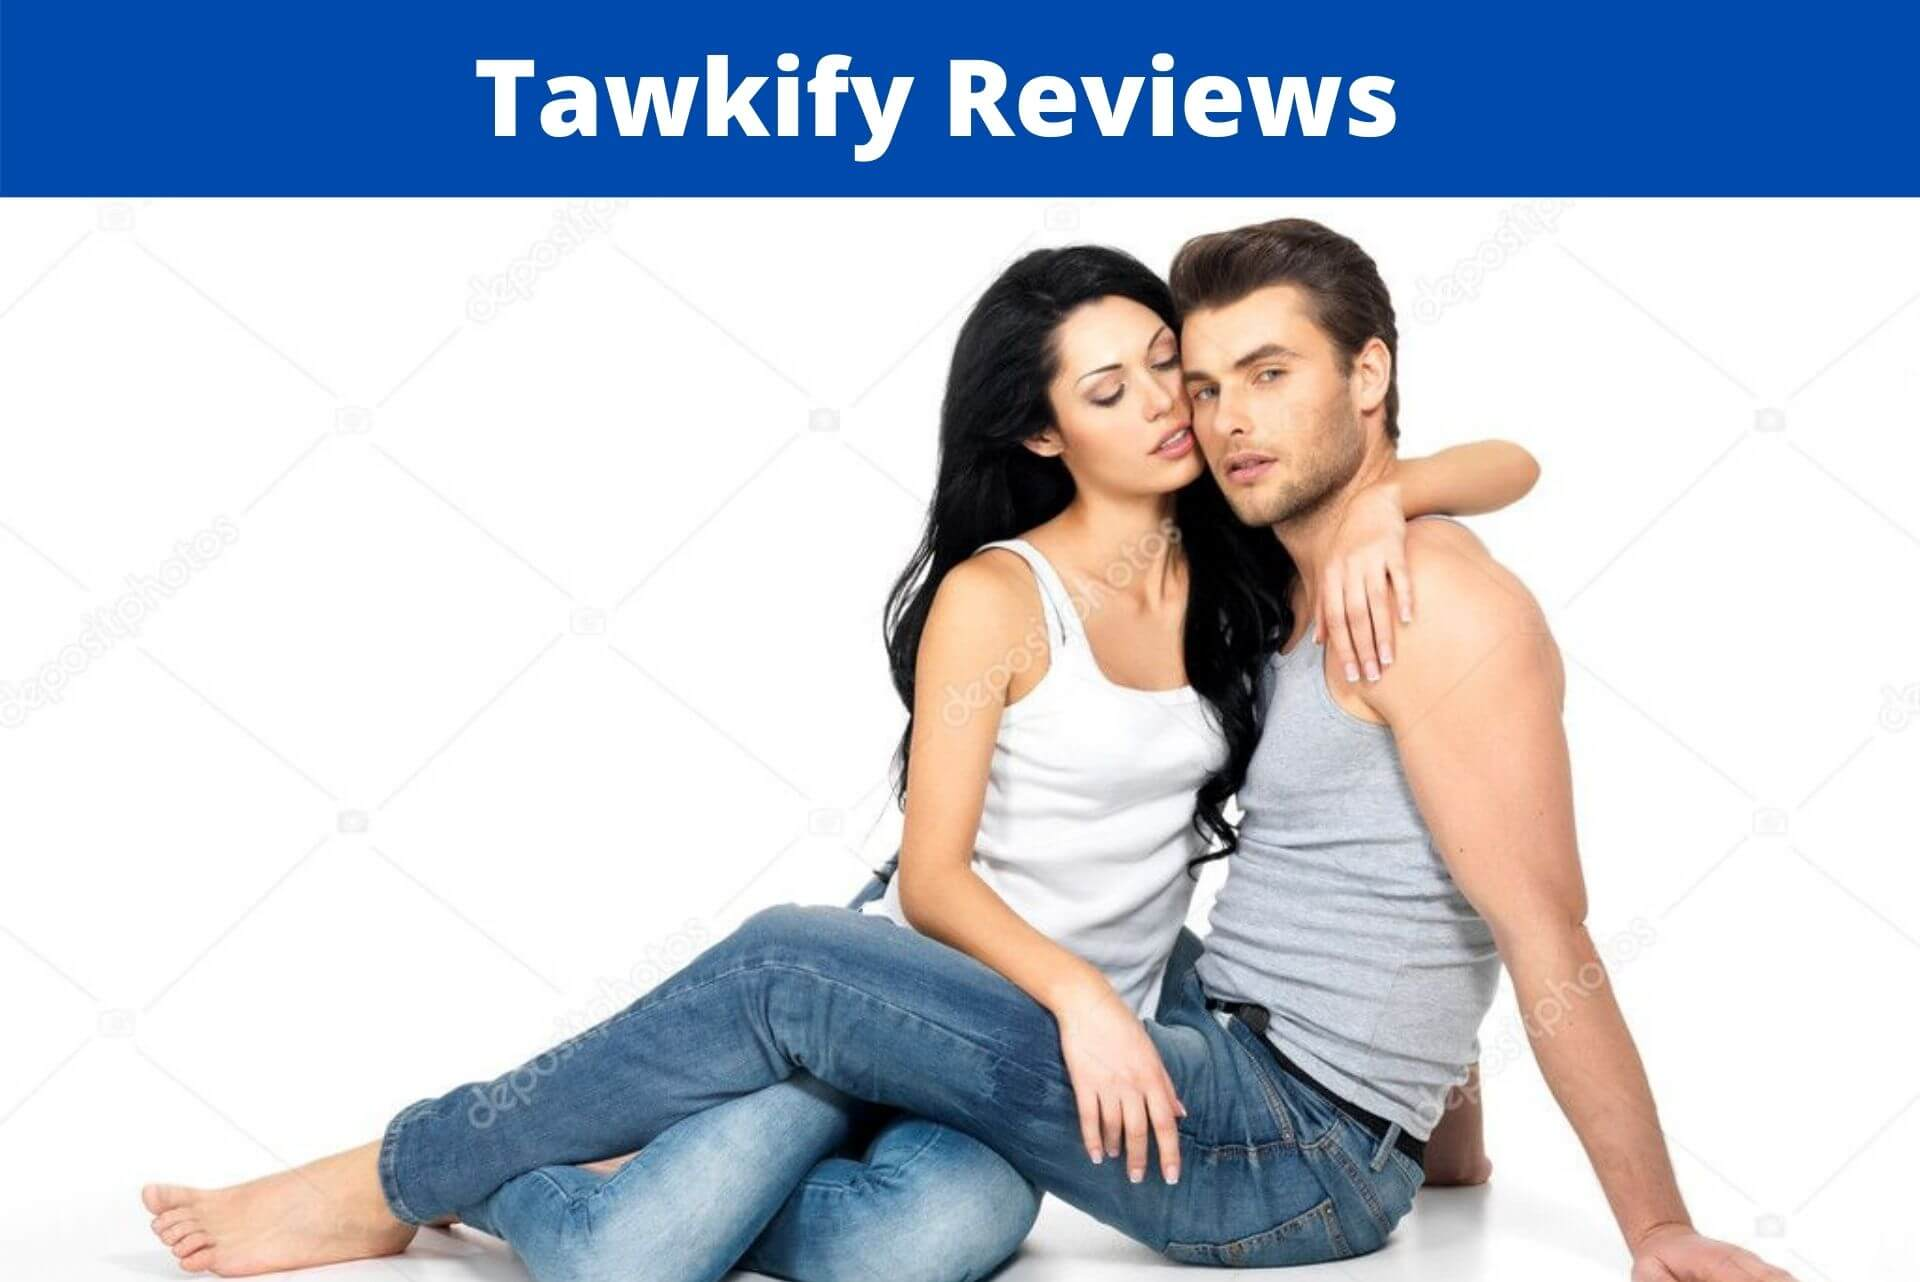 Tawkify Reviews – Why People Love/Hate It?